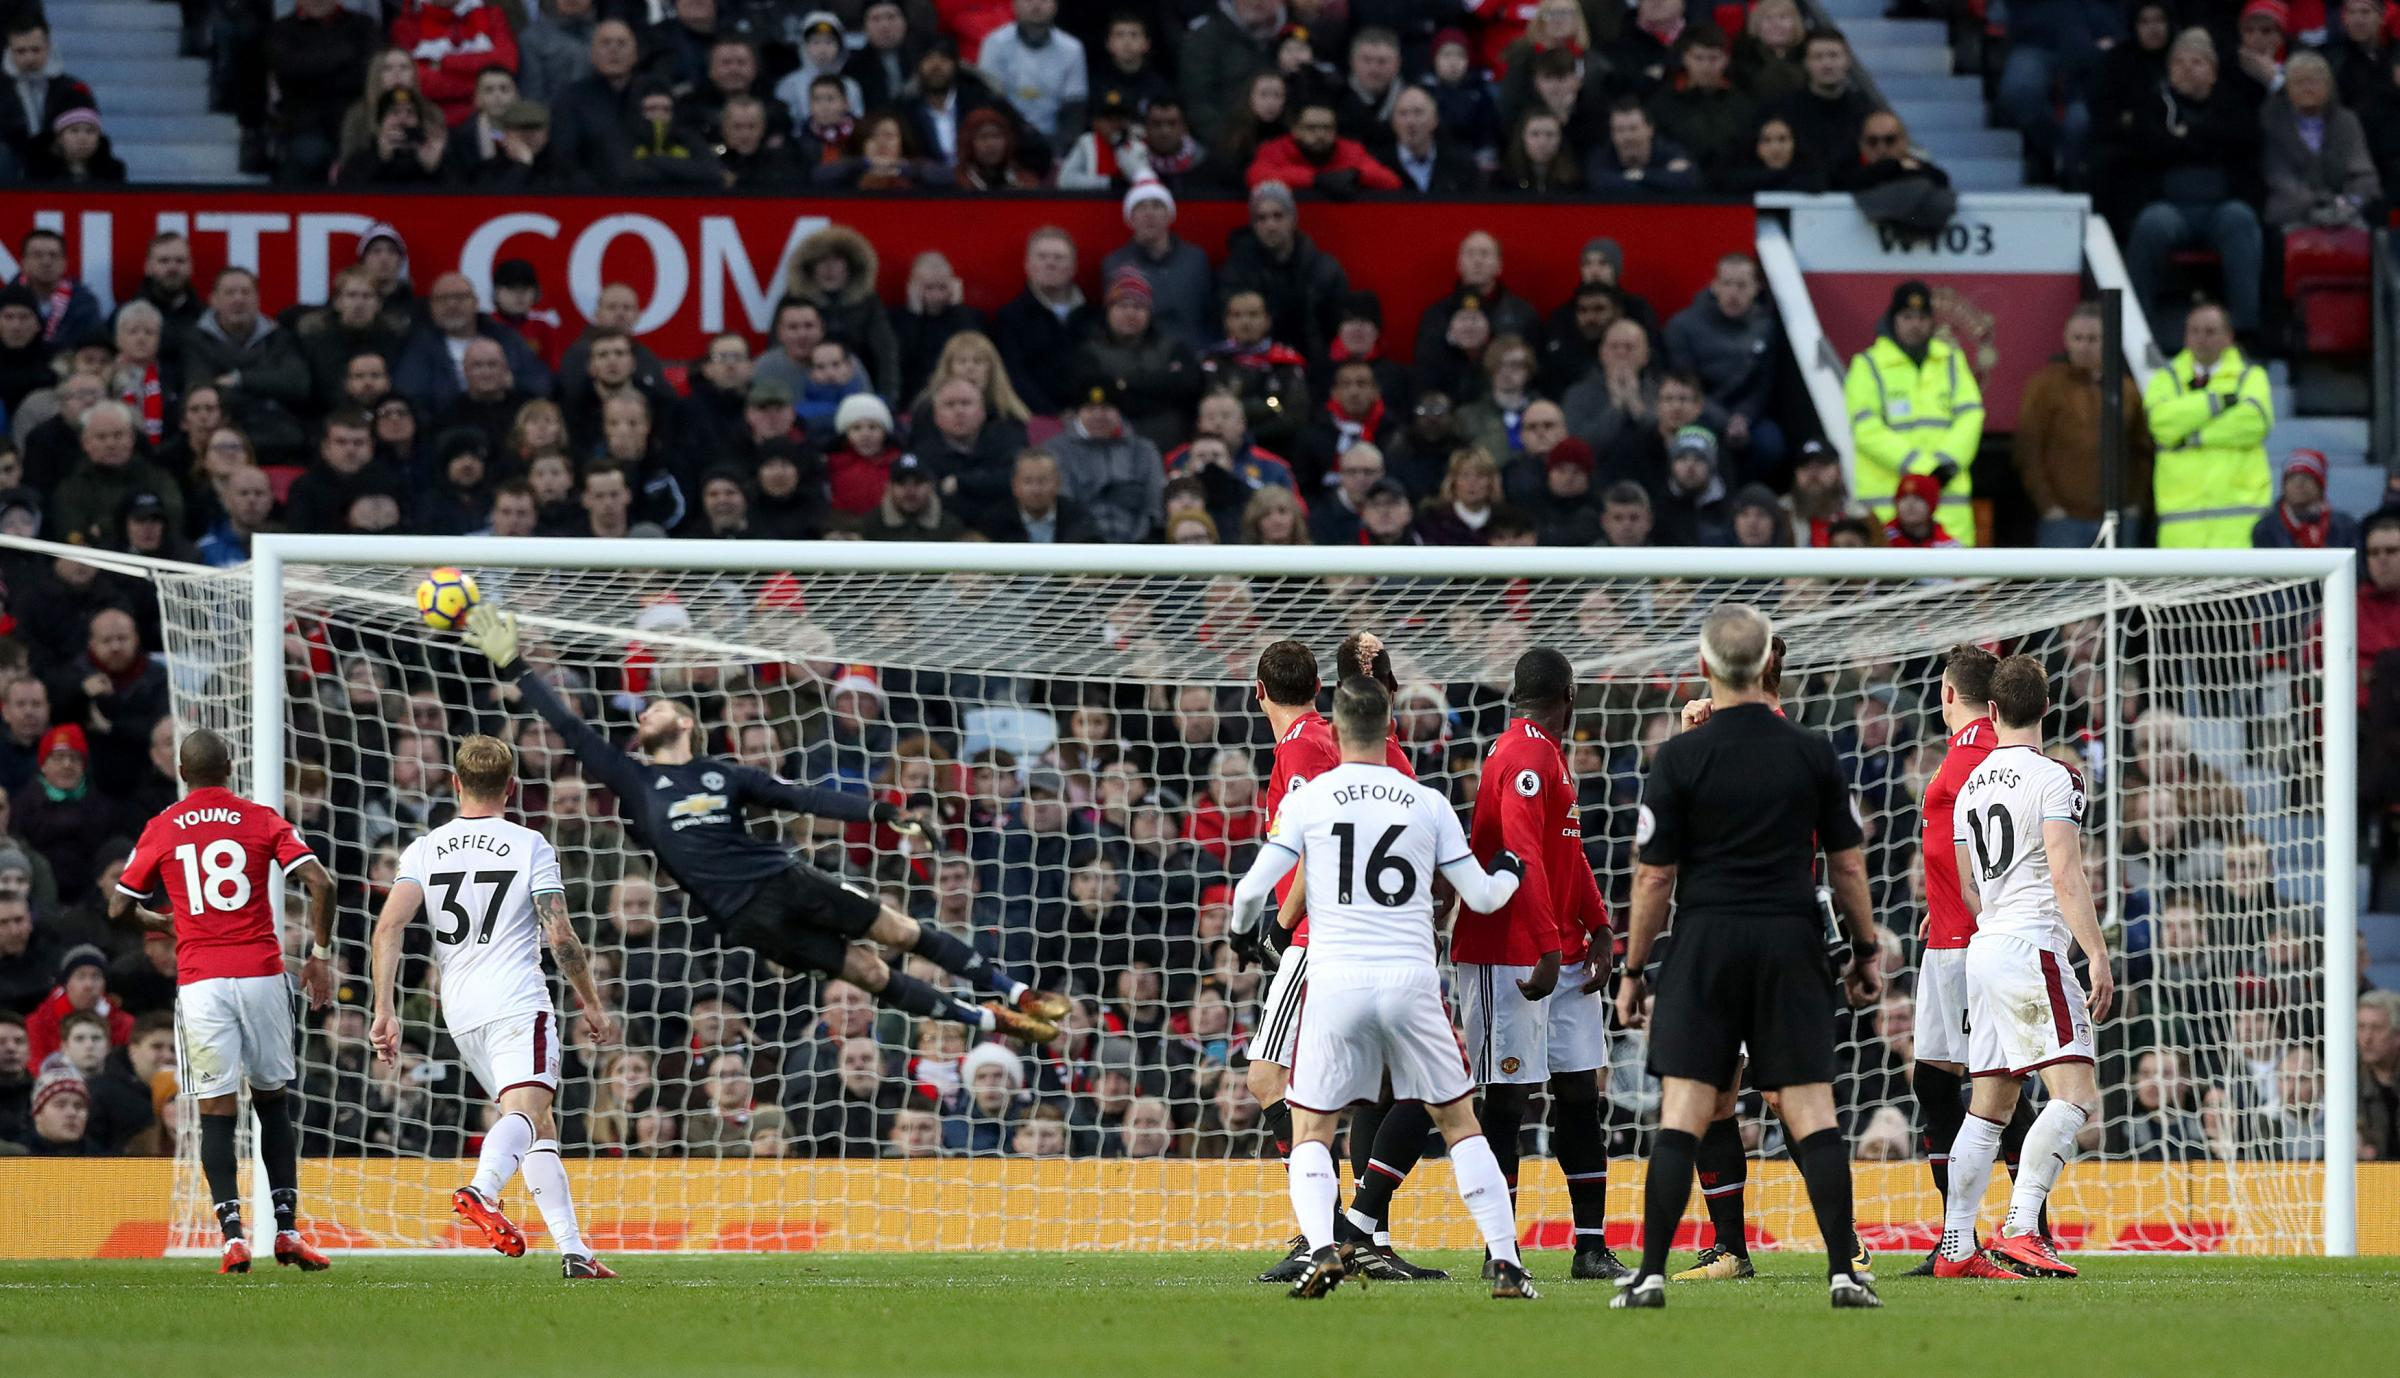 Steven Defour watches his sensational free-kick fly past David De Gea at Old Trafford